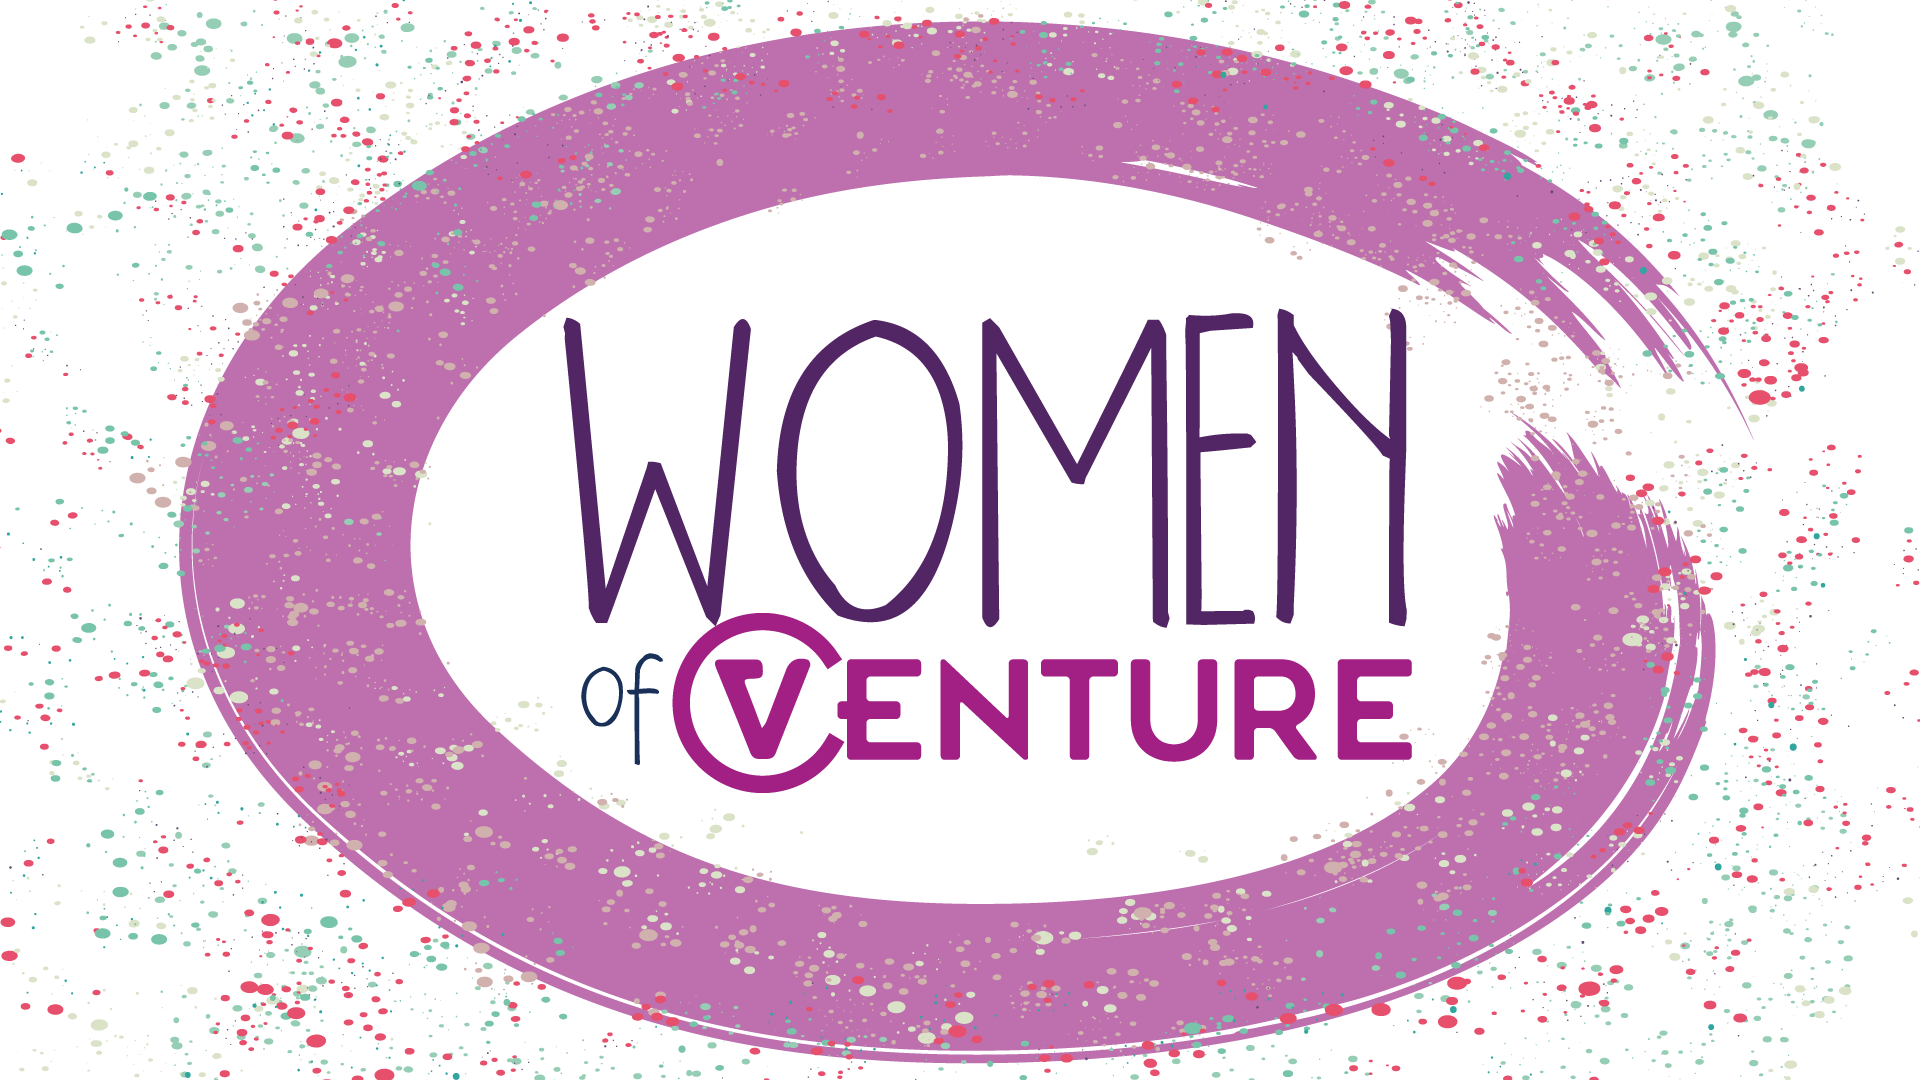 WOMEN of VENTURE - The Women of Venture meet monthly doing all sorts of fun social activities. Do you have an idea or would like to host an event? Contact Debra with questions 513-882-2926